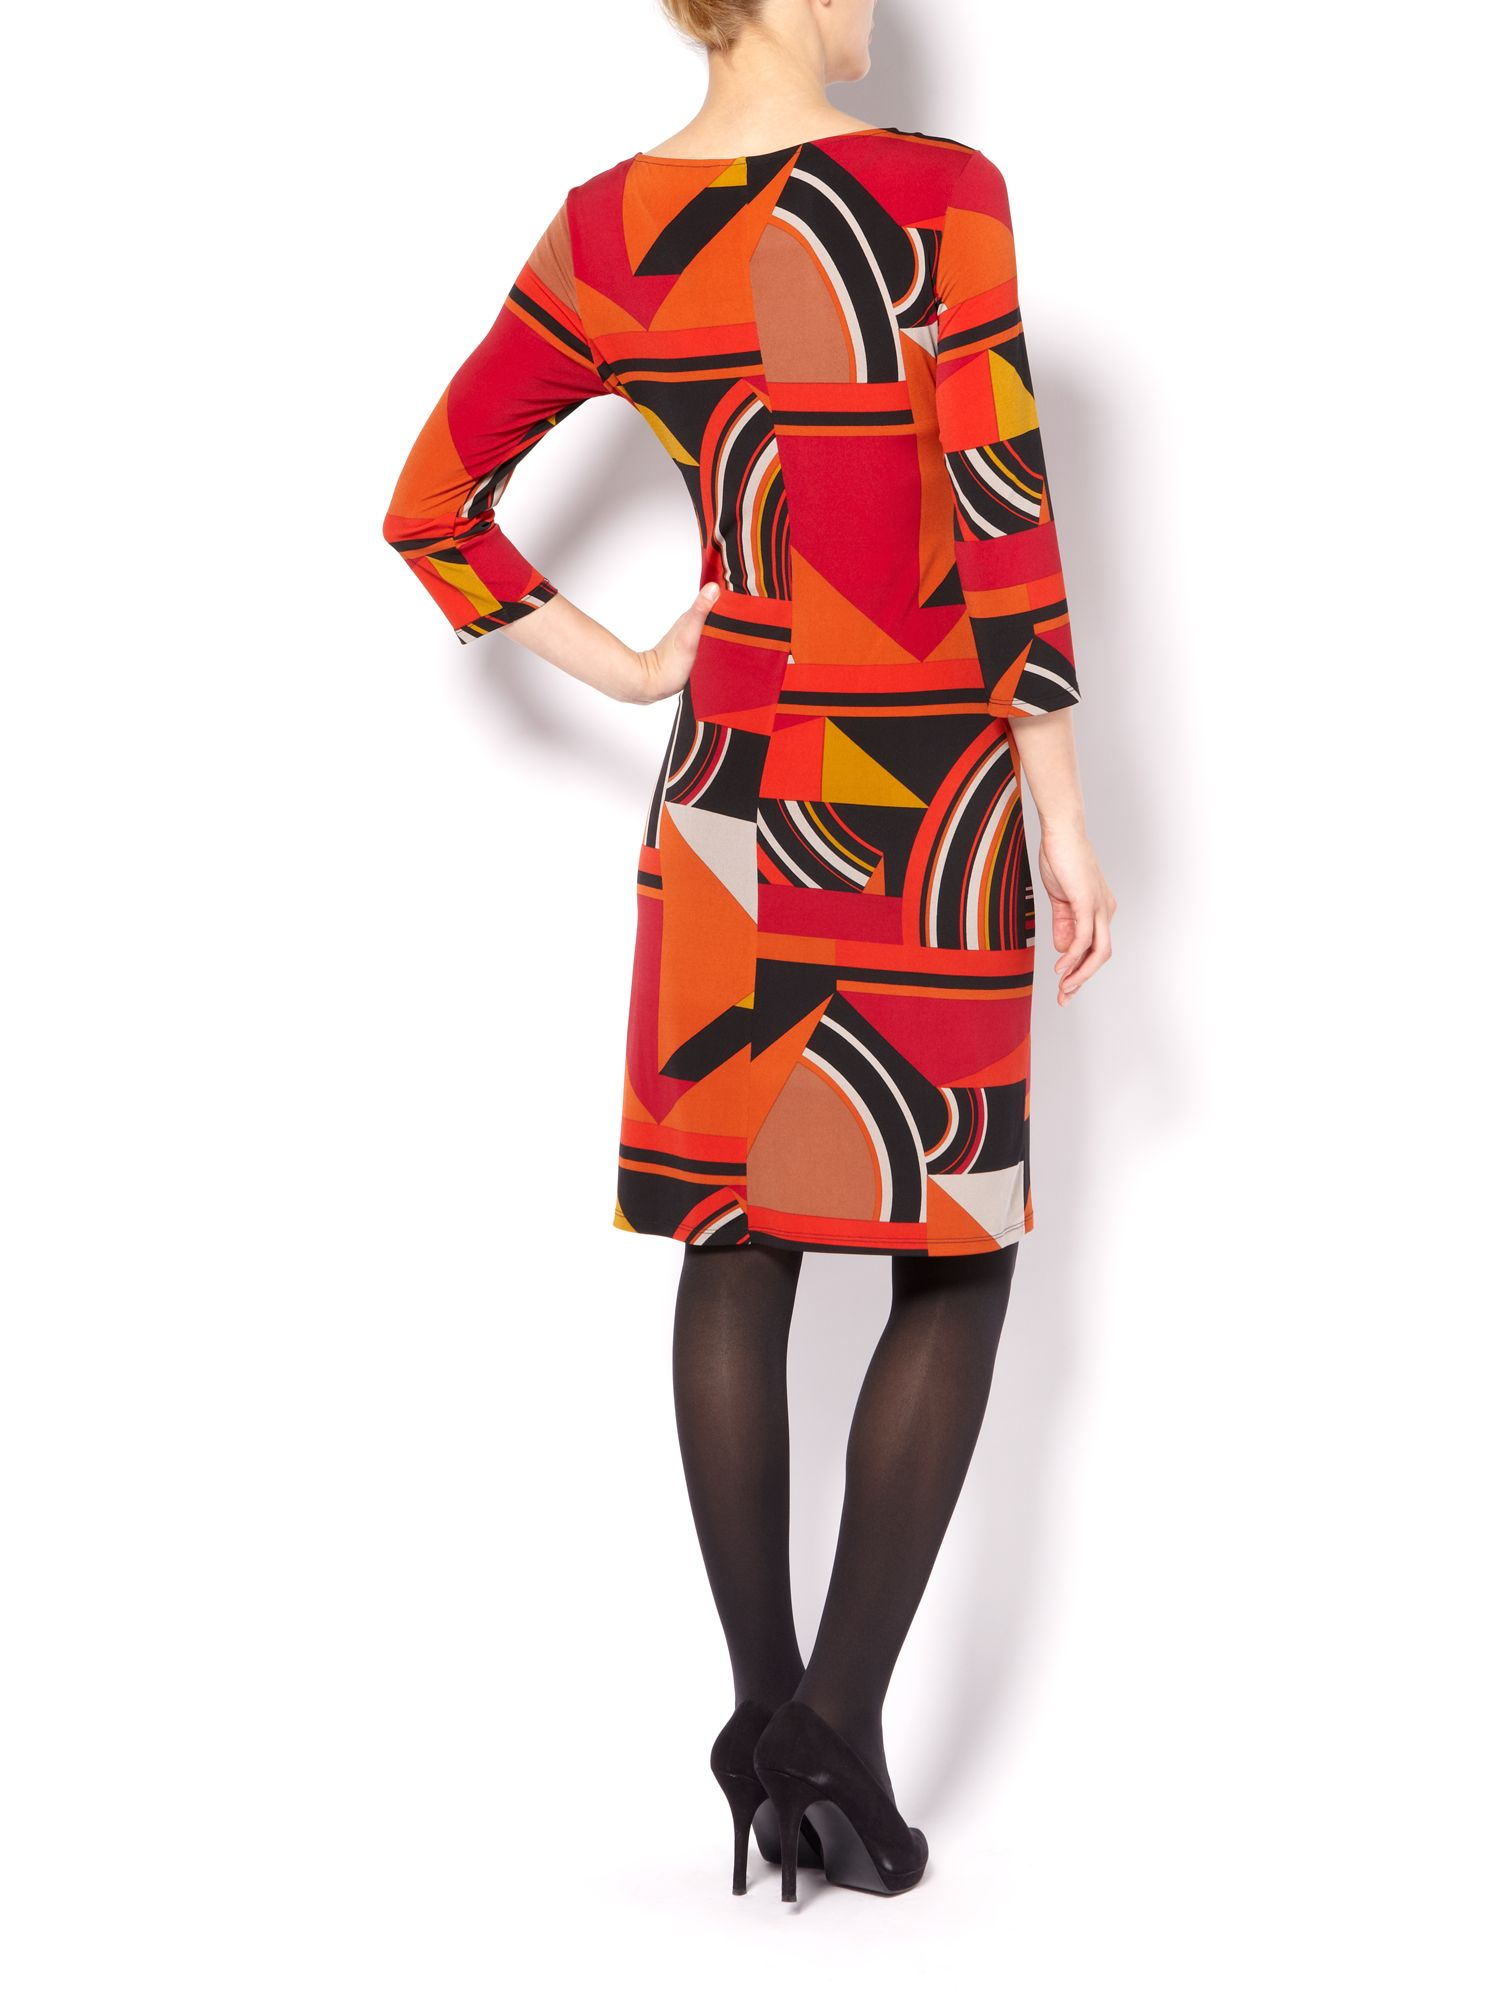 Deco print tunic dress